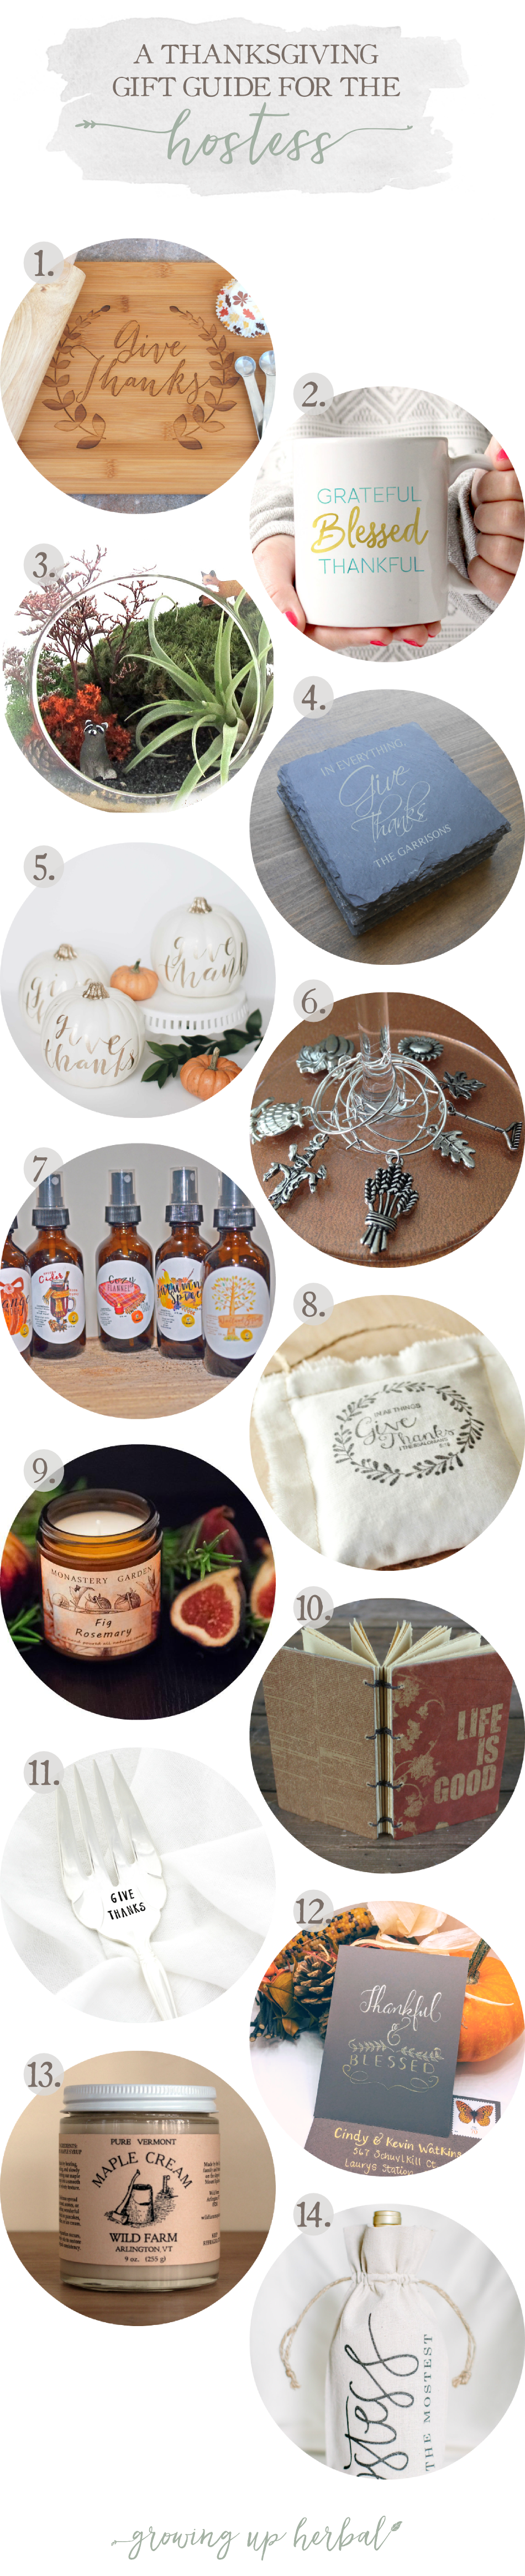 "2016 Thanksgiving Gift Guide For The Hostess | Growing Up Herbal | Tell your Thanksgiving Day dinner hostess, ""Thank you,"" with a meaningful handmade gift from this year!"